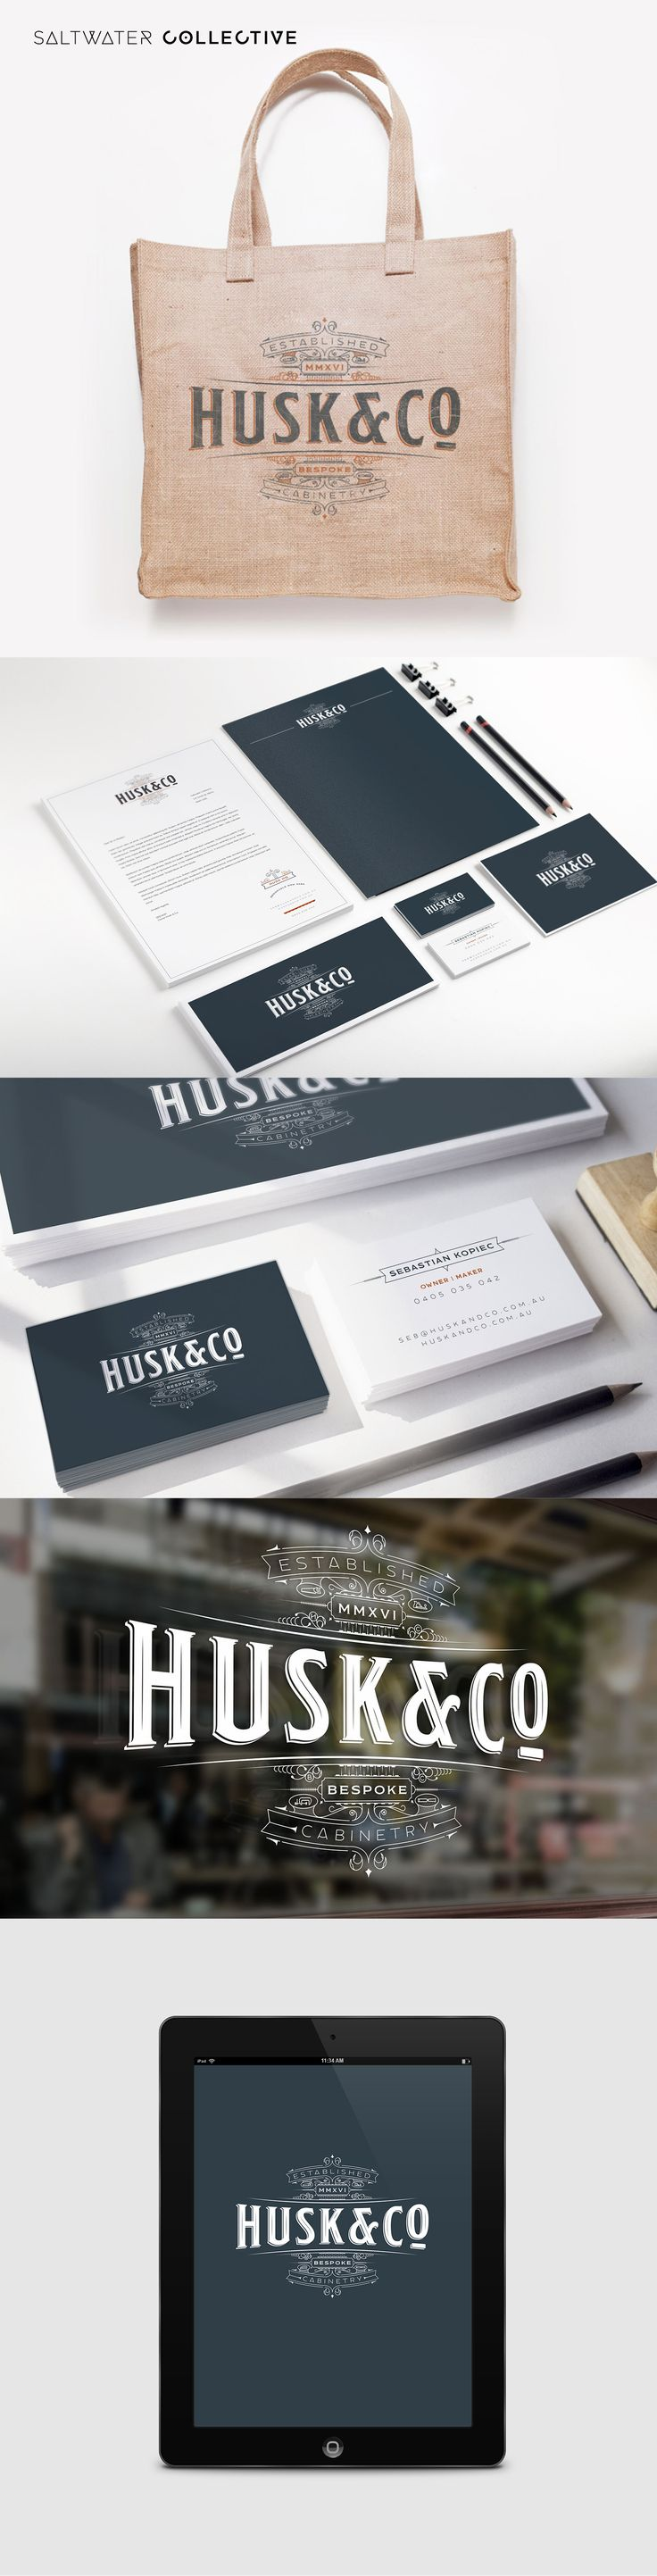 New brand creation for Husk and Co #DesignedBySWC